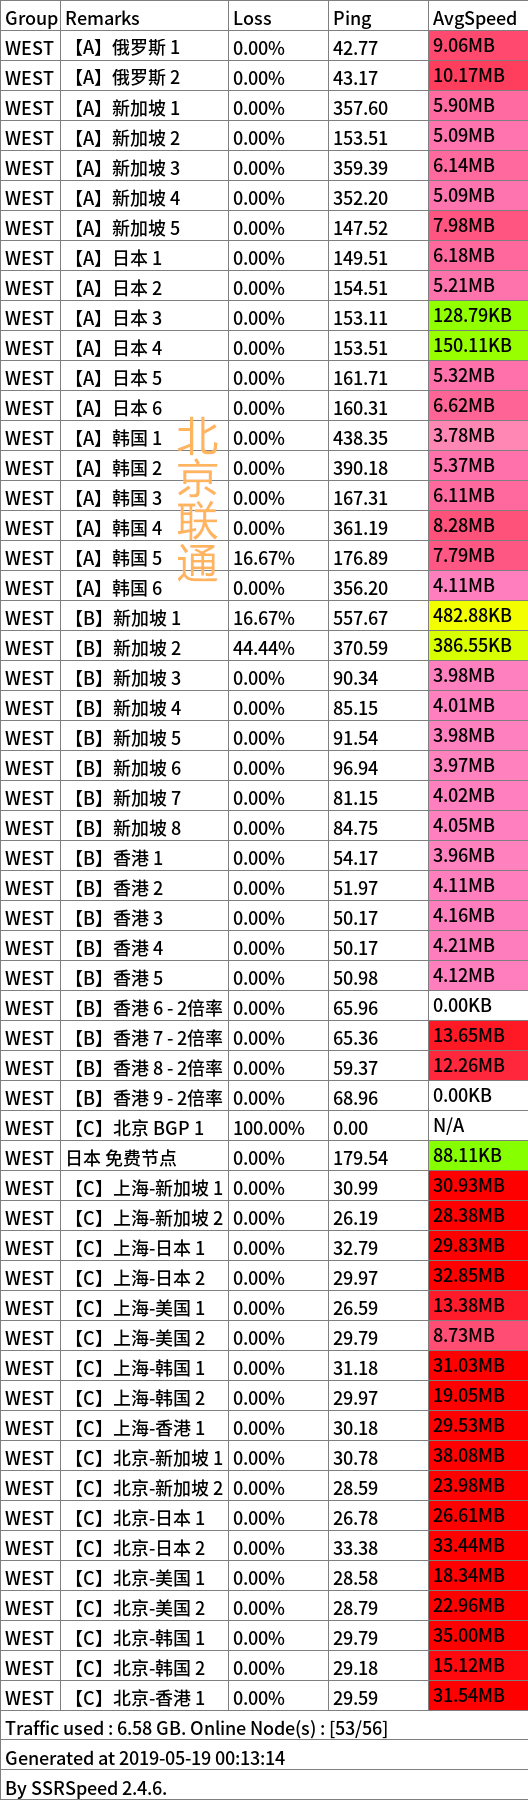 WEST 5 18 联通_副本